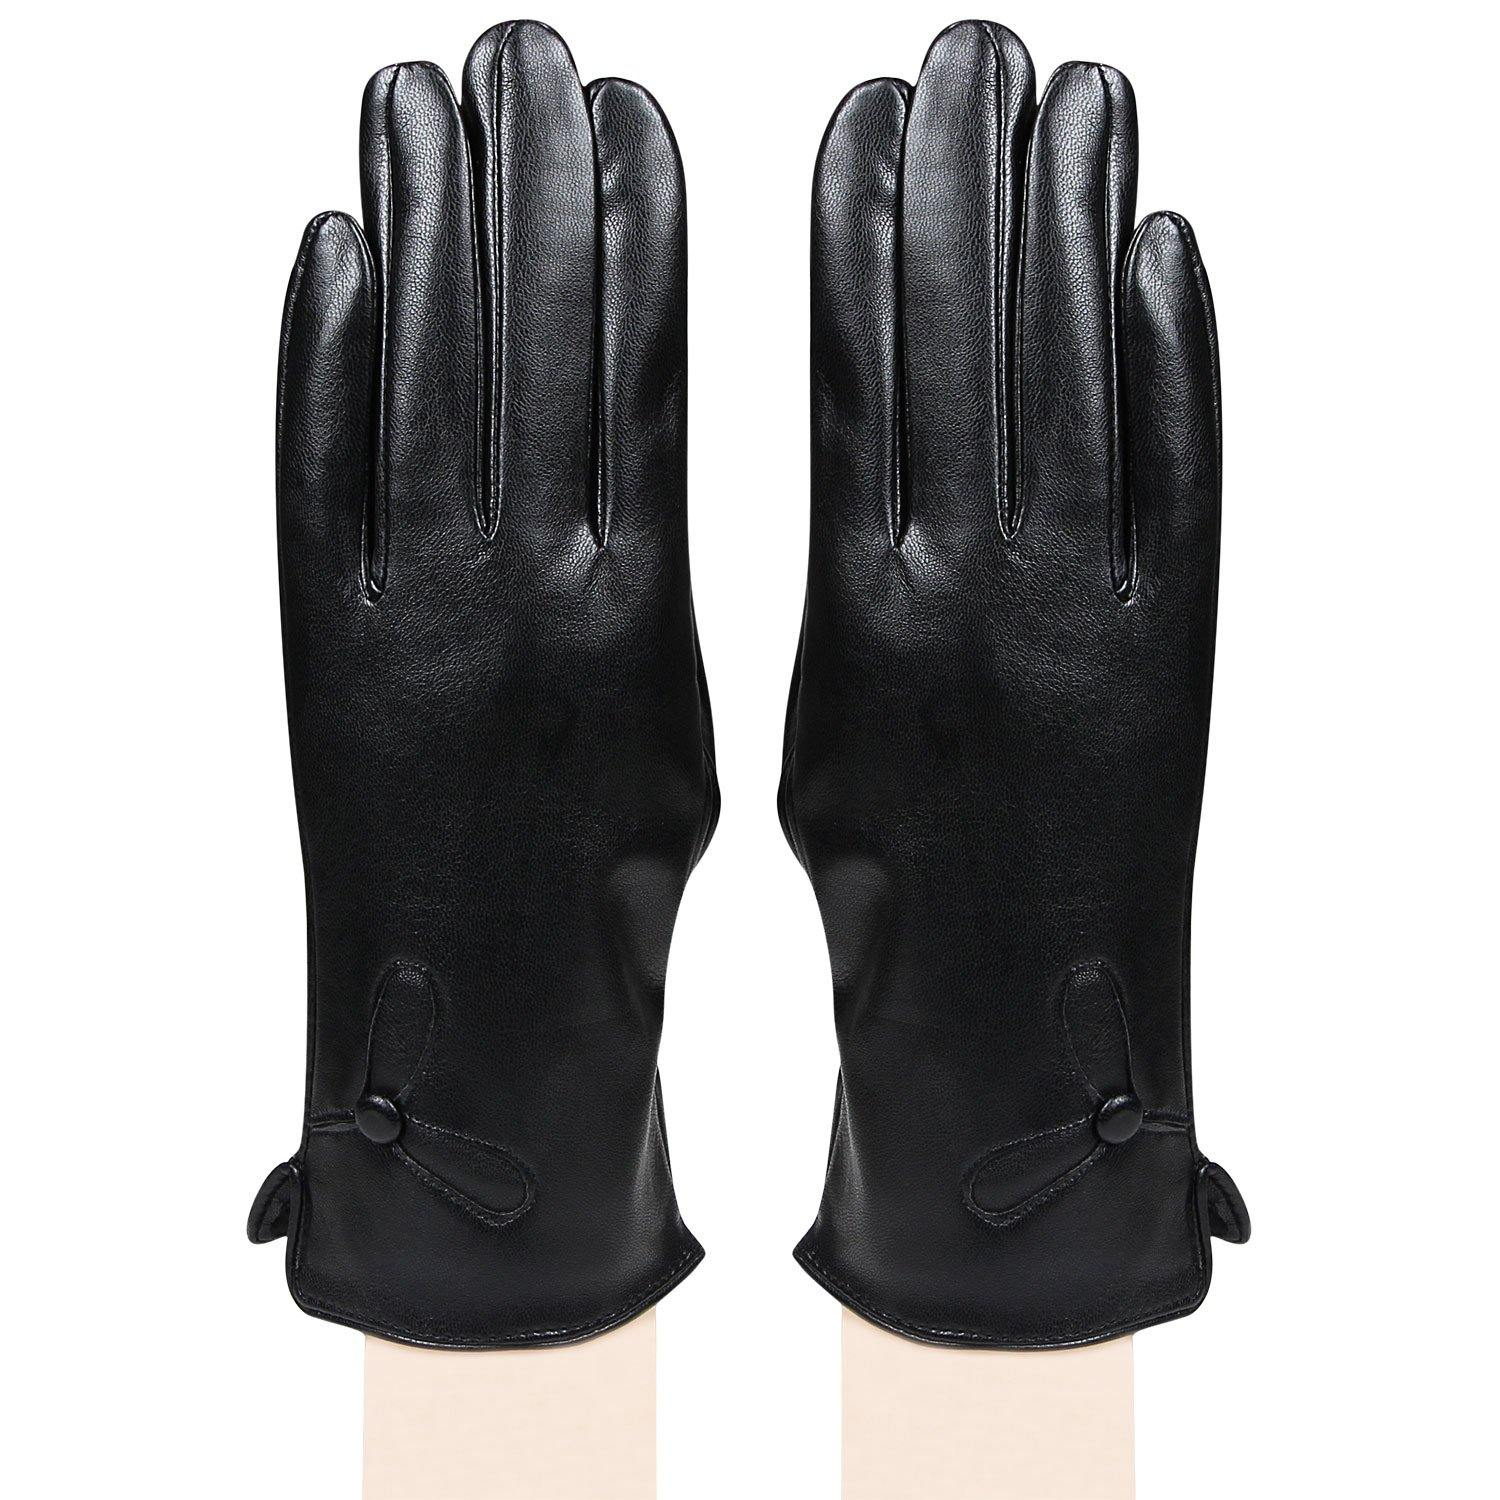 Women's designer Gloves-Black - Bonjour Group